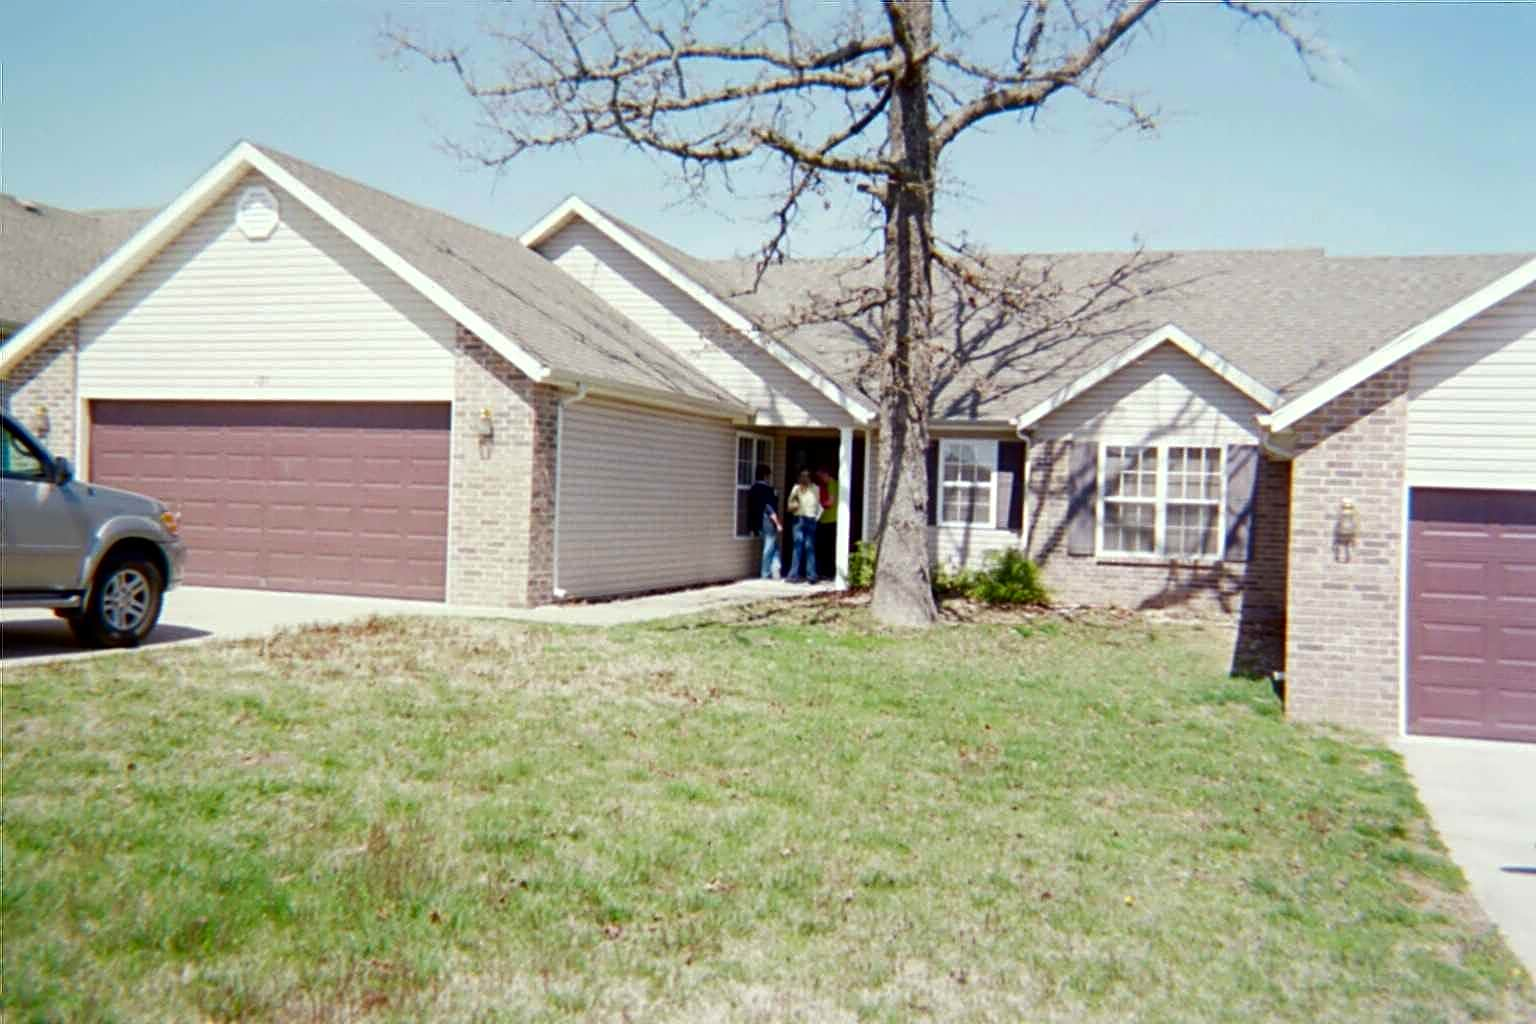 House for Rent in Branson